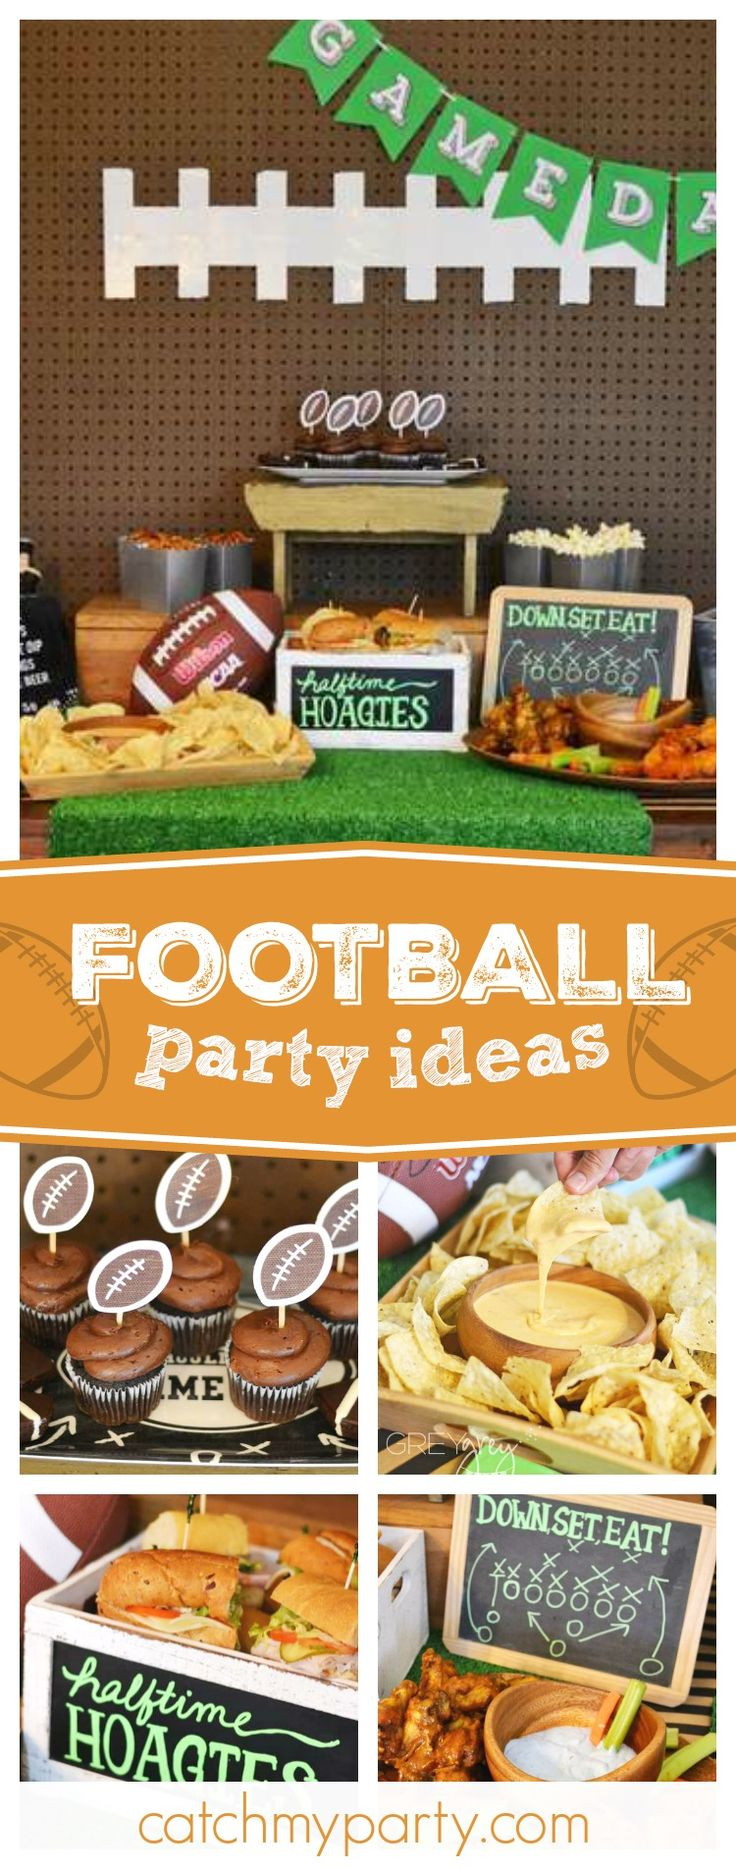 Get ready for the big game with this awesome football themed party! The cupcakes are fantastic!! See more party ideas and share yours at CatchMYparty.com #football #superbowl #sport #gamenight